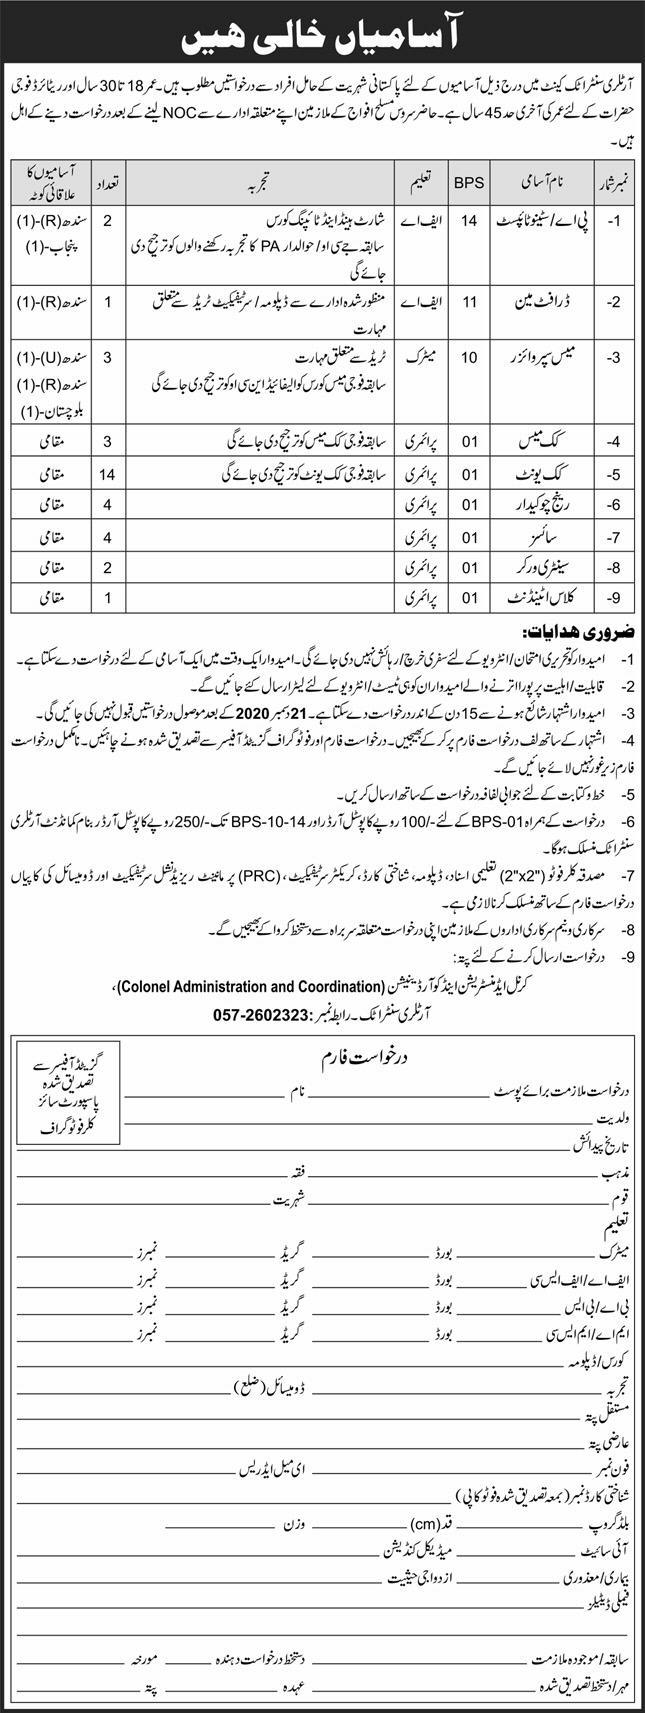 Pakistan Army Artillery Center Jobs 2020 for Personal Assistant, Steno Typist, Draftsman, Mess Supervisor, Cook Mess, Cook Unit, Chowkidar, Sanitary Worker and Class Attendant